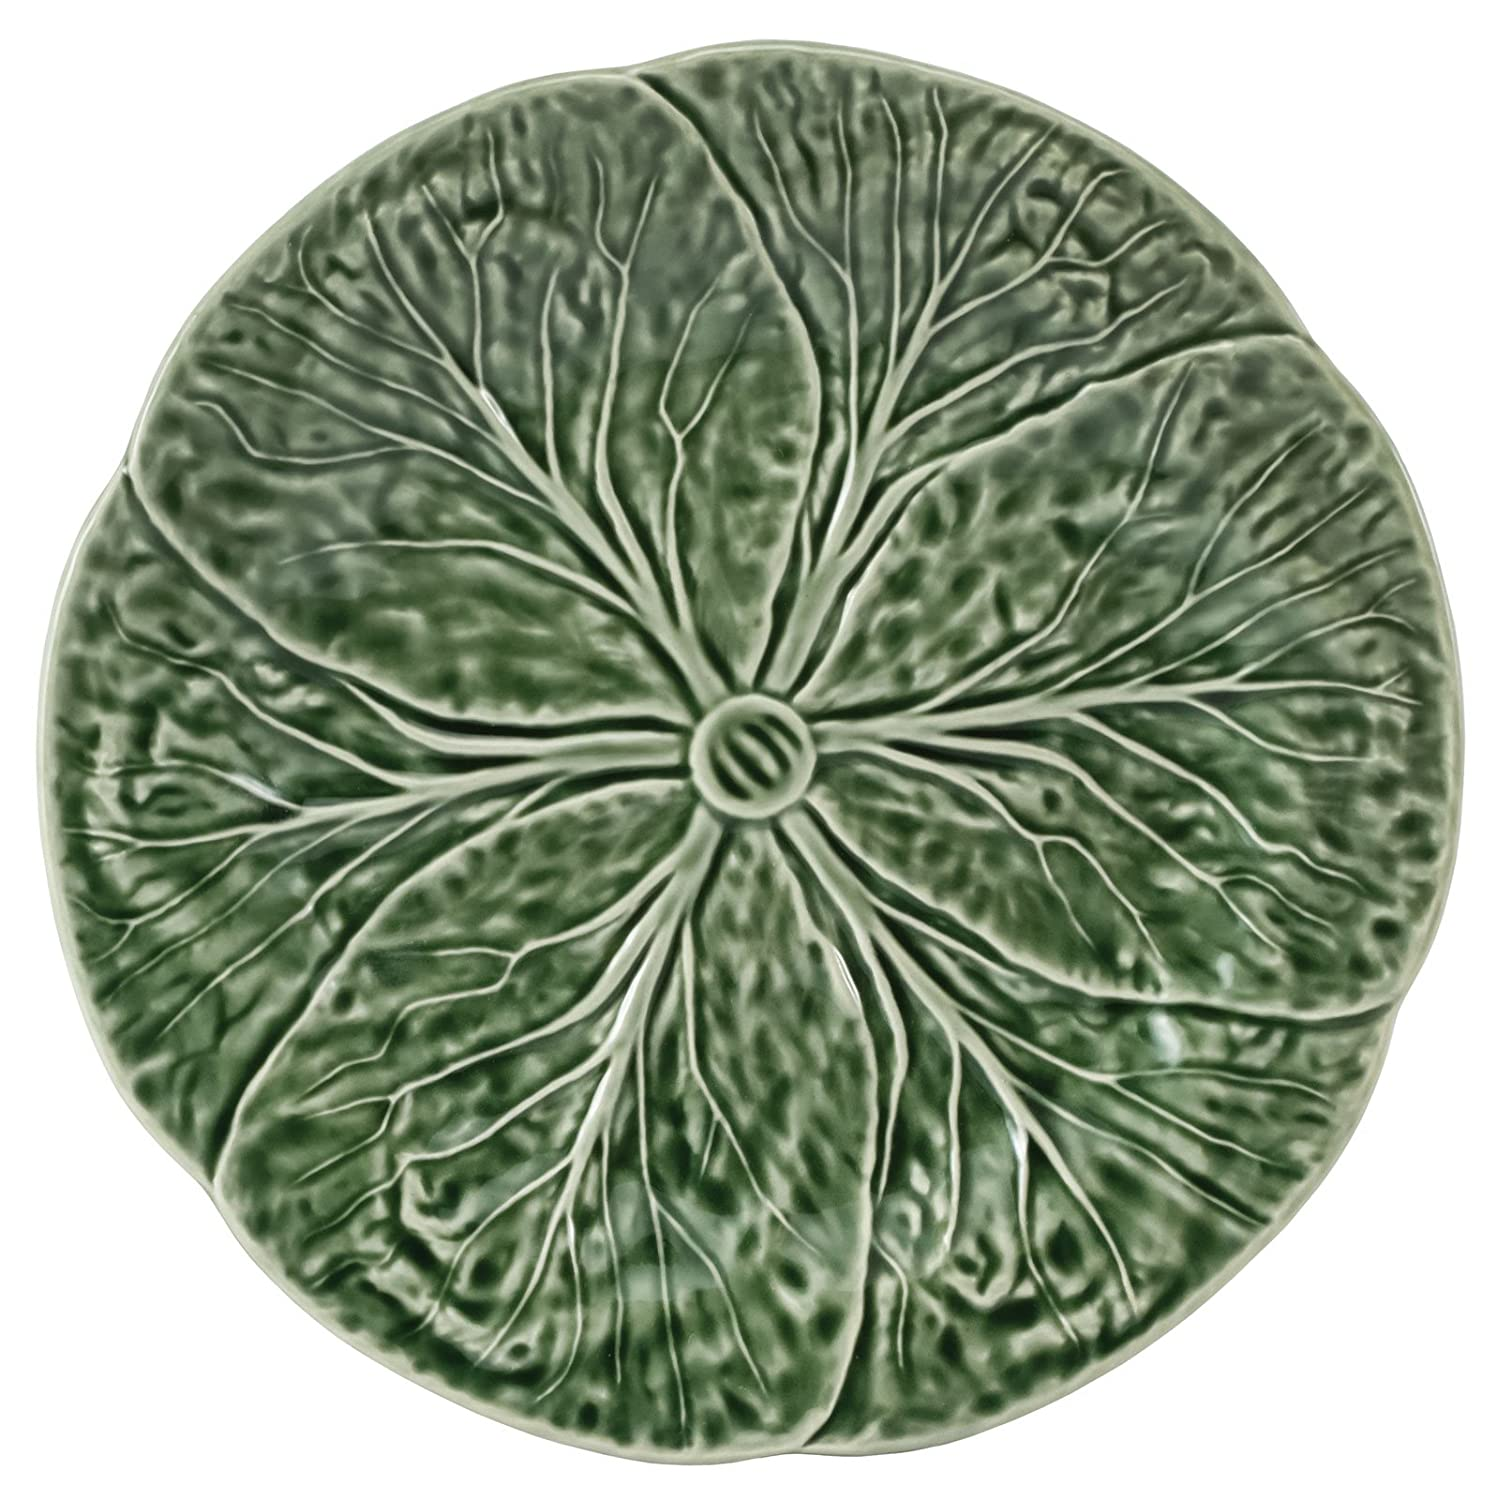 Christmas Tablescape Décor - Majolica Green Cabbage Leaf Pottery Dinner Plate - Set of 2 by Traders and Company